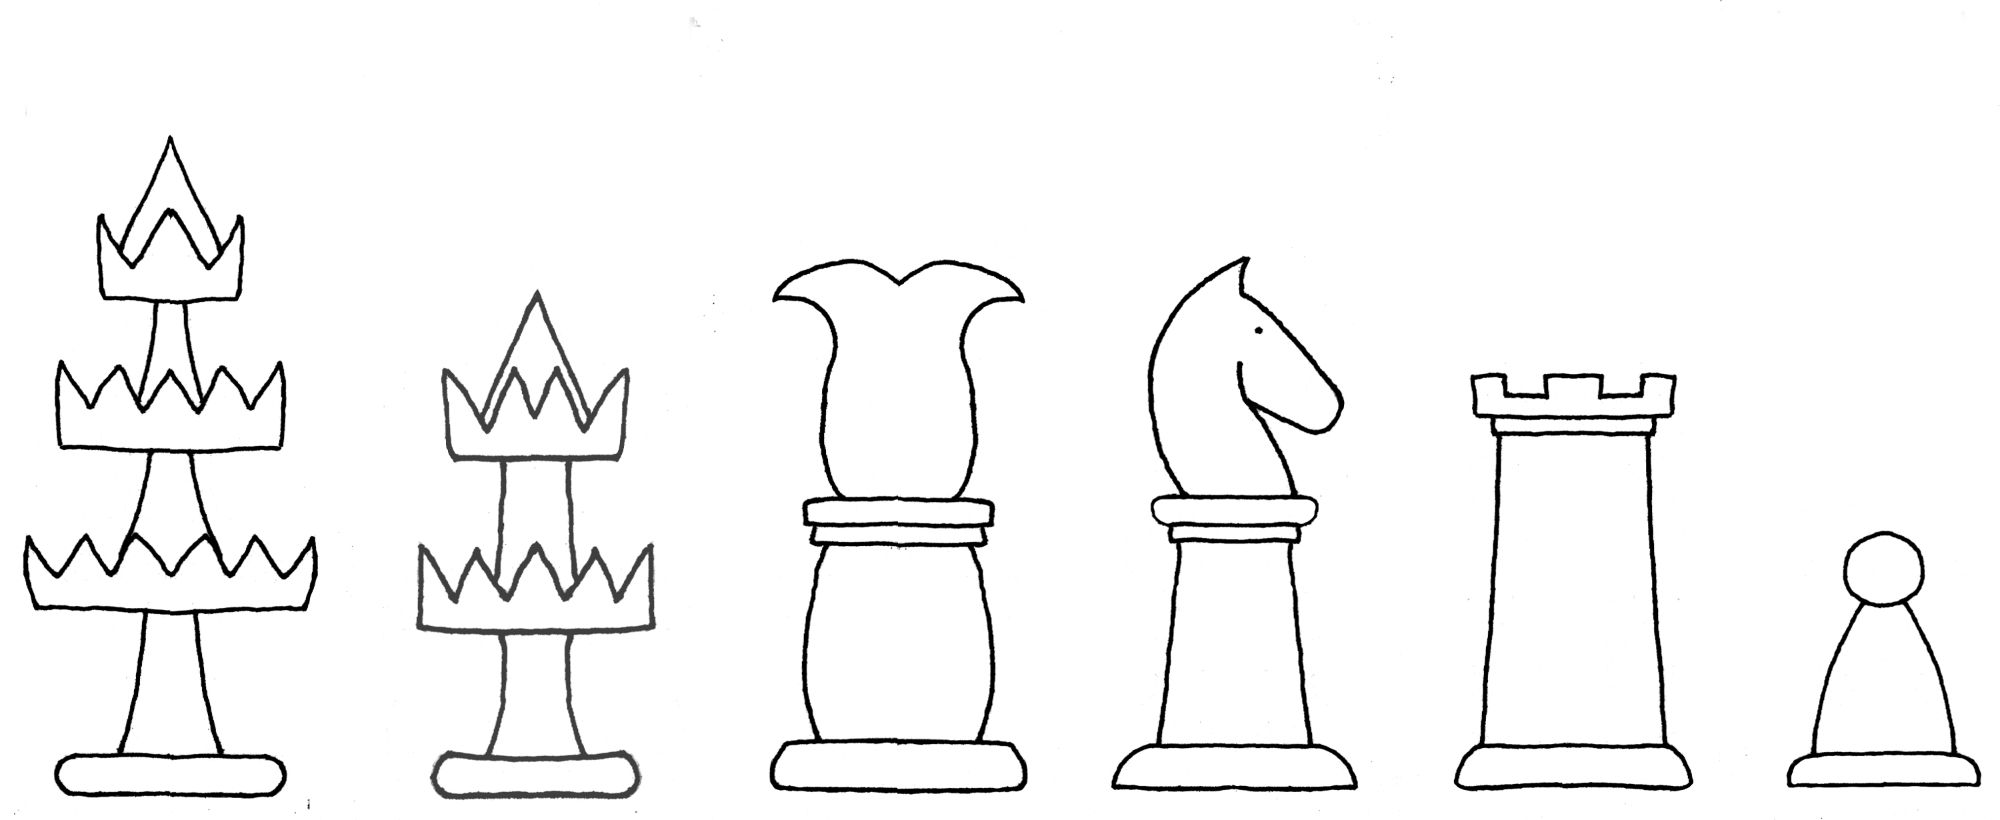 Interpretive diagram of seventeenth century Selenus chess set